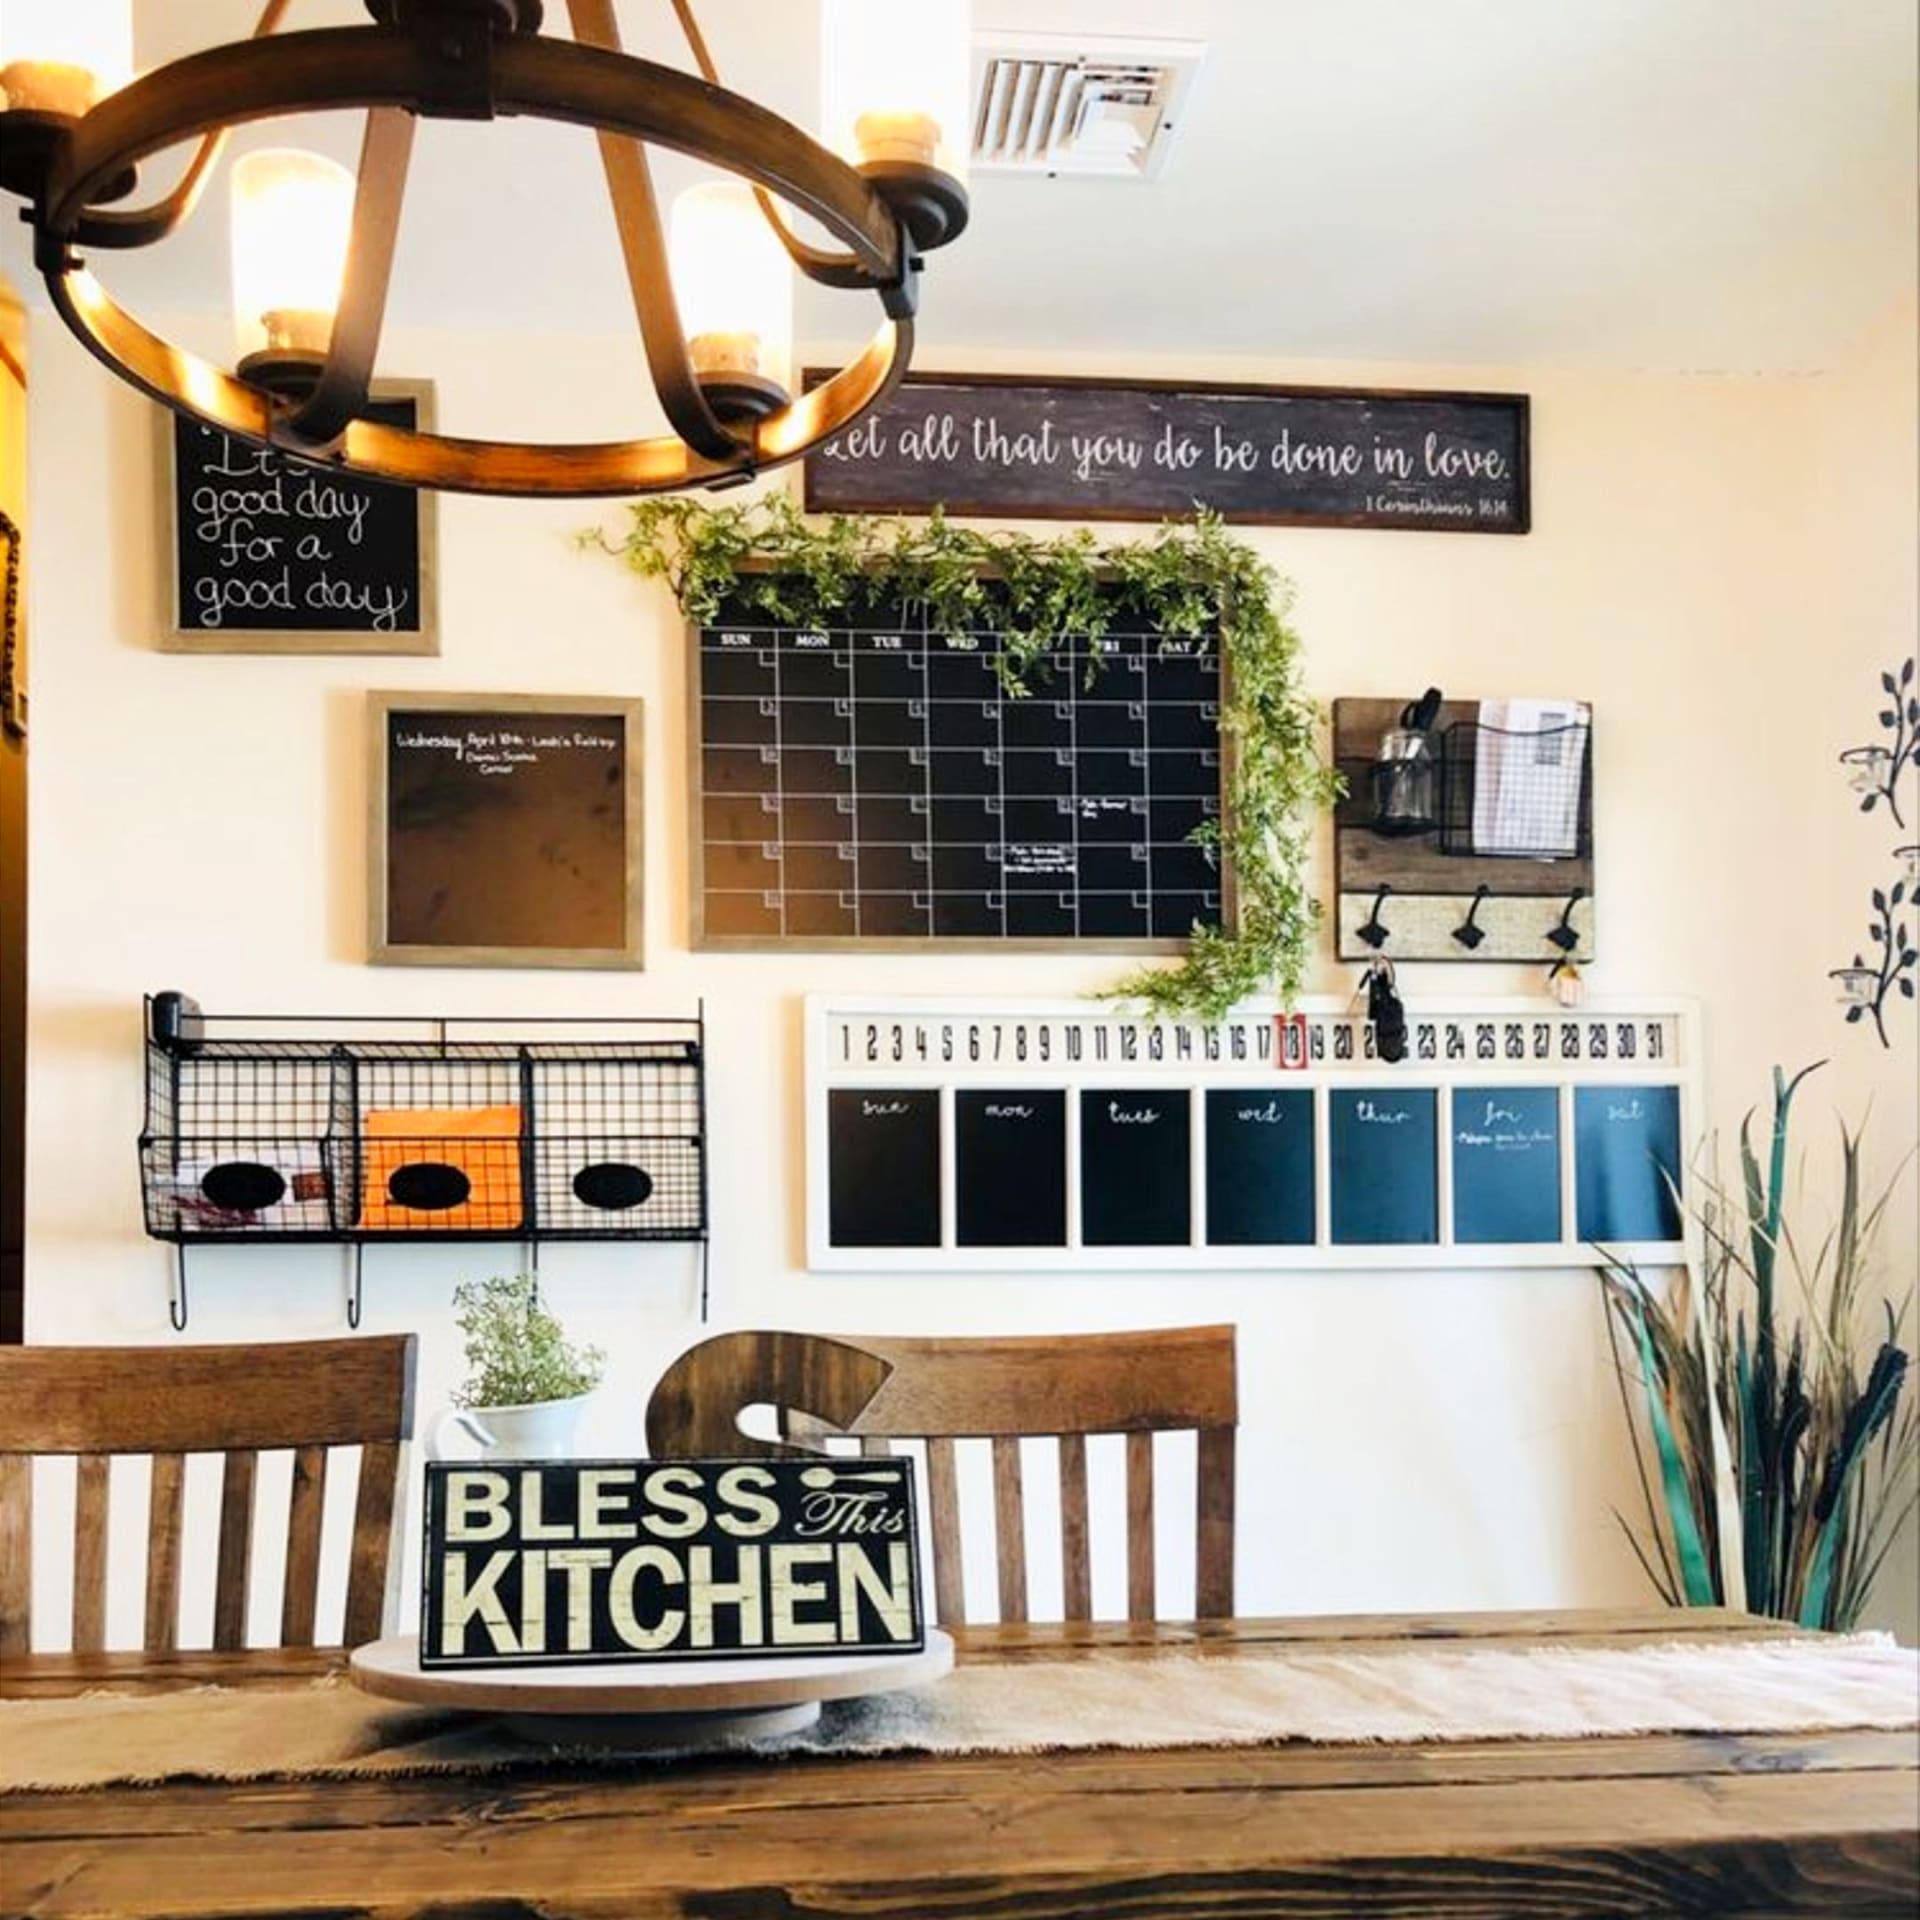 declutter kitchen clutter on counters and countertops with a DIY family command center idea like these